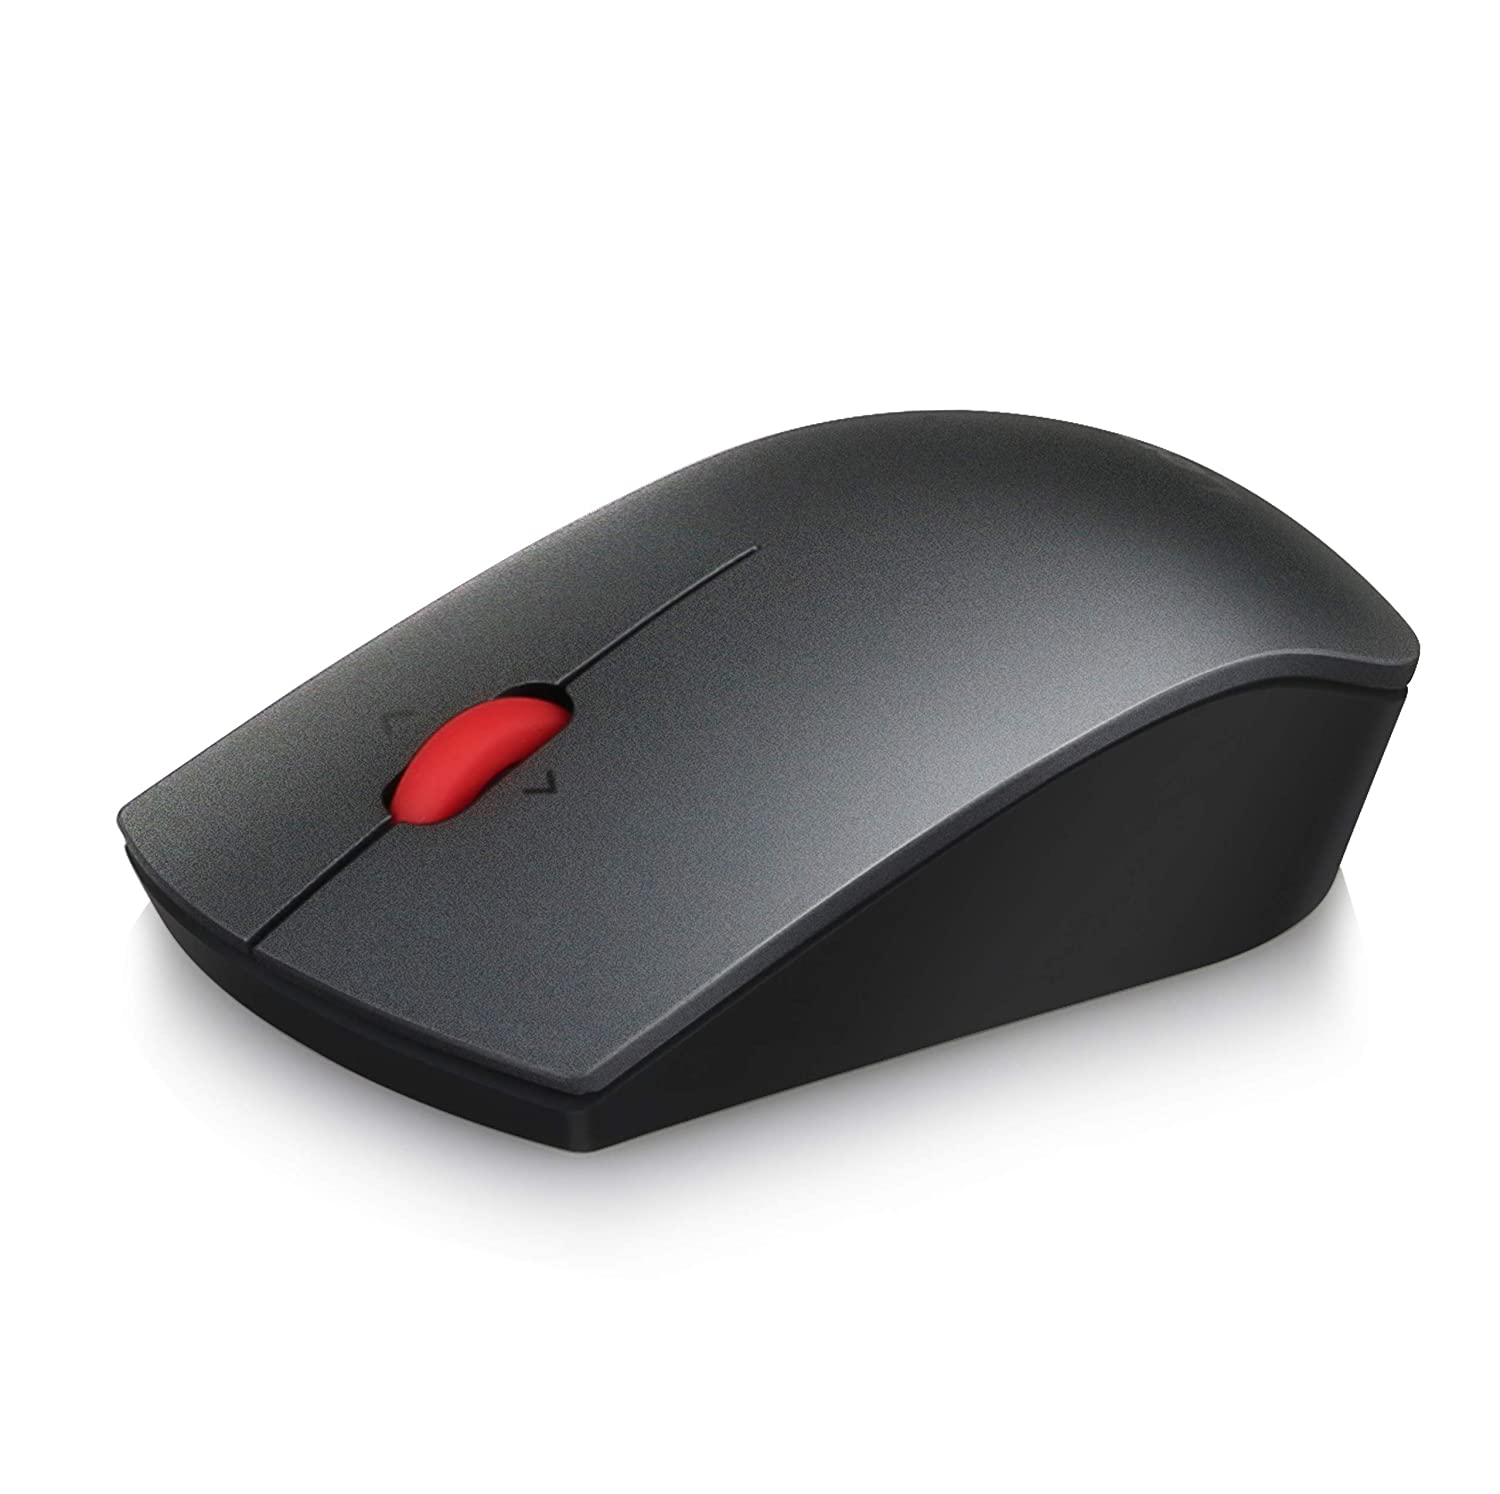 Lenovo 700 Wireless Laser Mouse - Full Size Lenovo (United States) Inc. GX30N77980